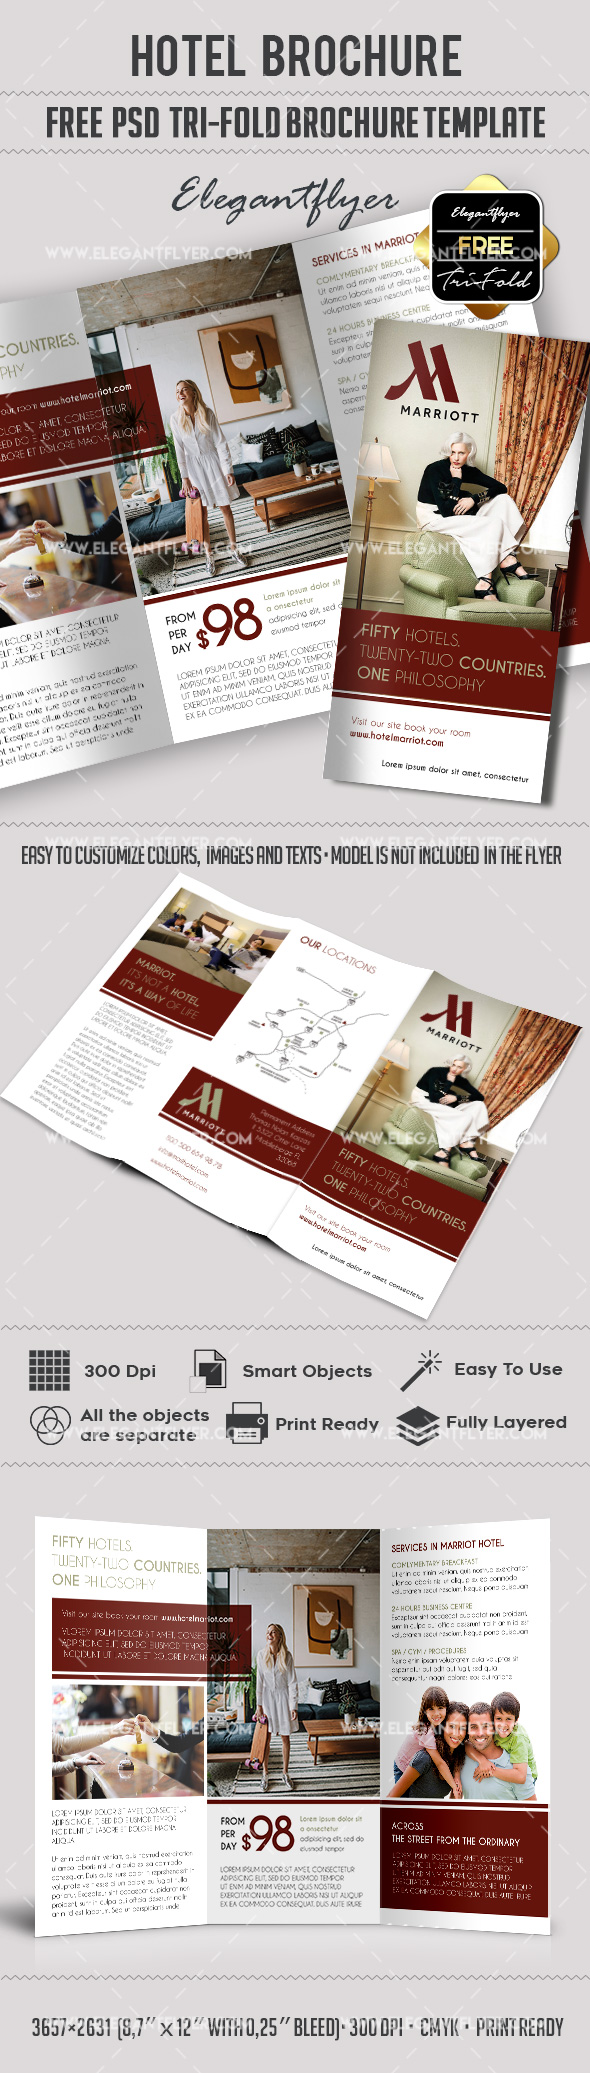 3d brochure templates psd - hotel free psd tri fold psd brochure template by